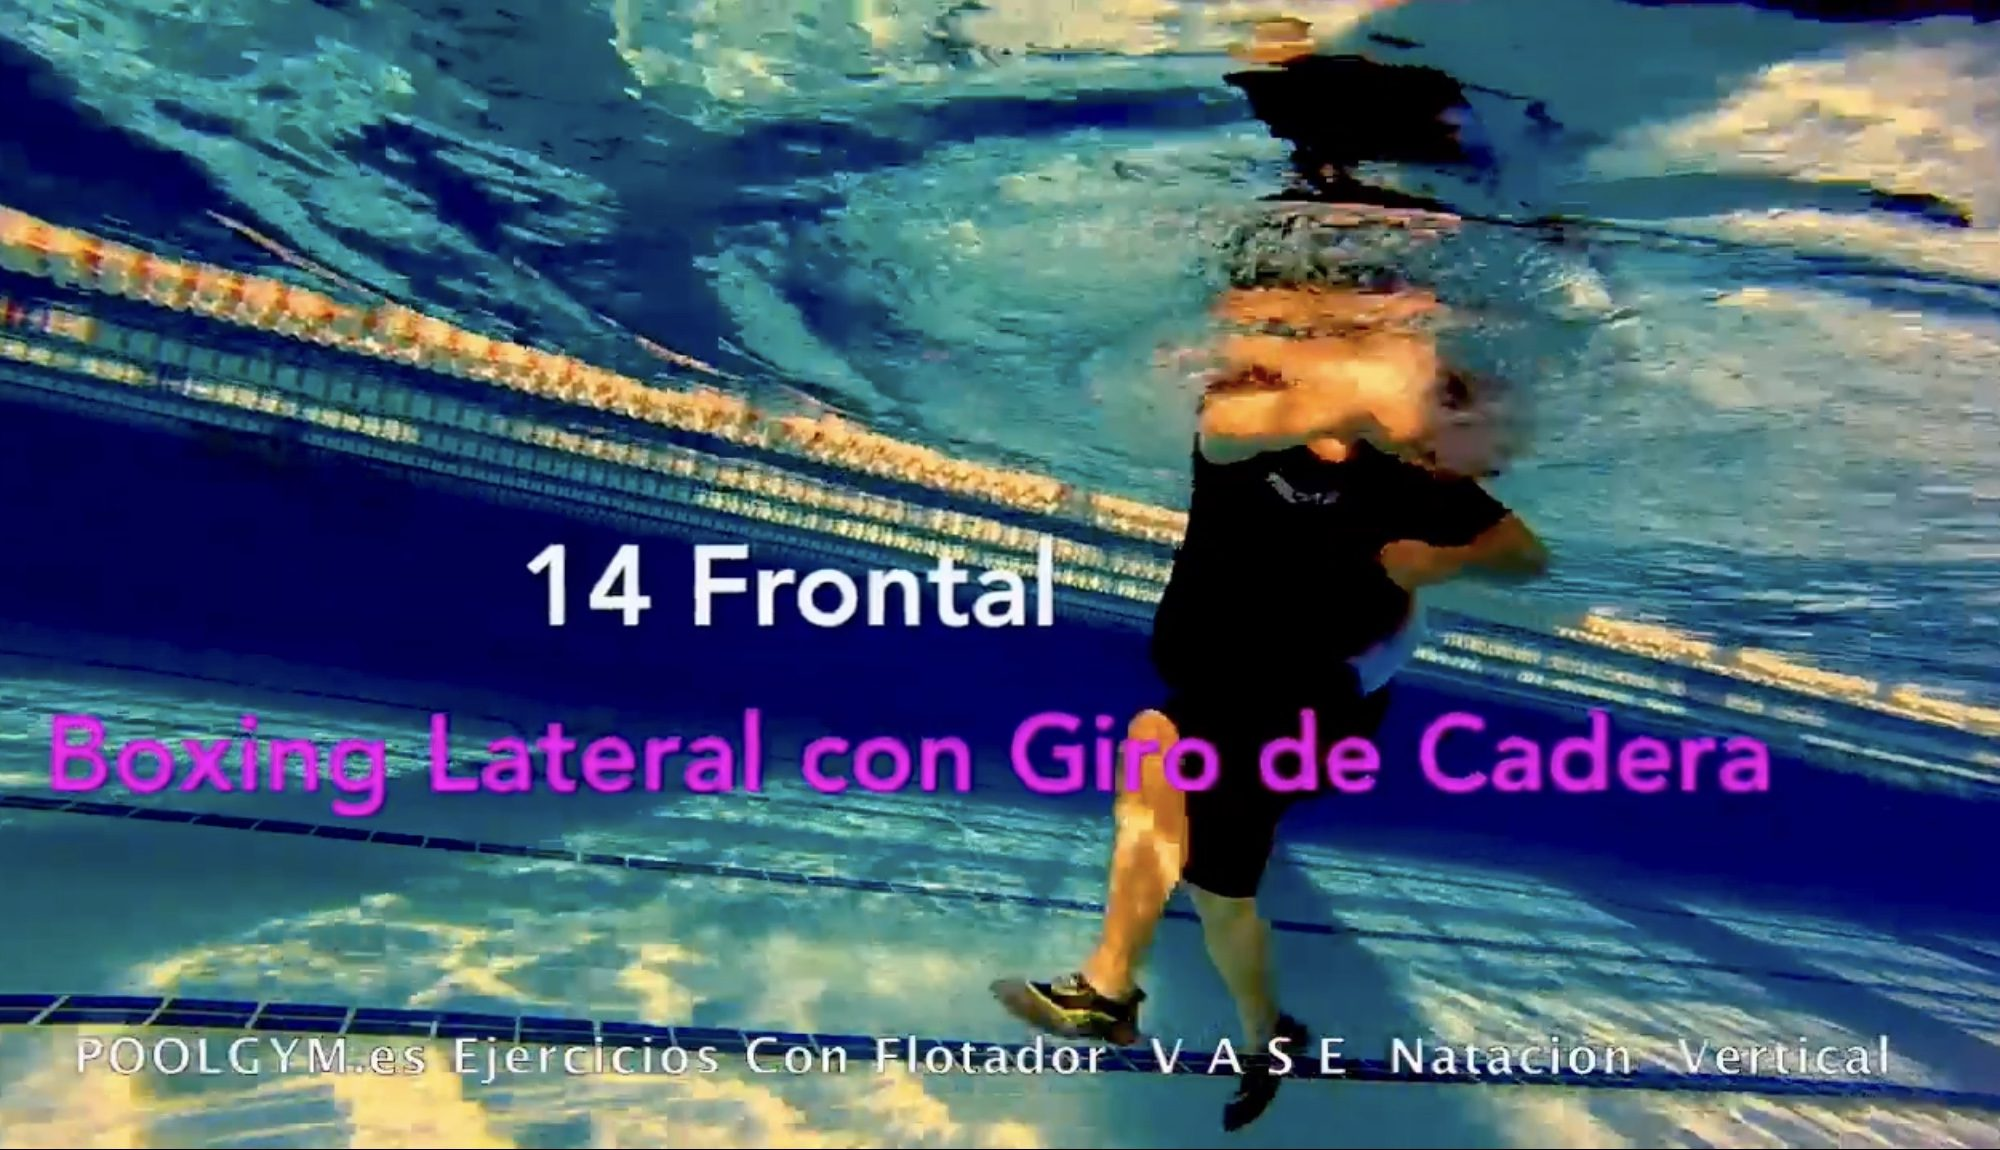 14 Frontal boxing lateraL poolgym.ES